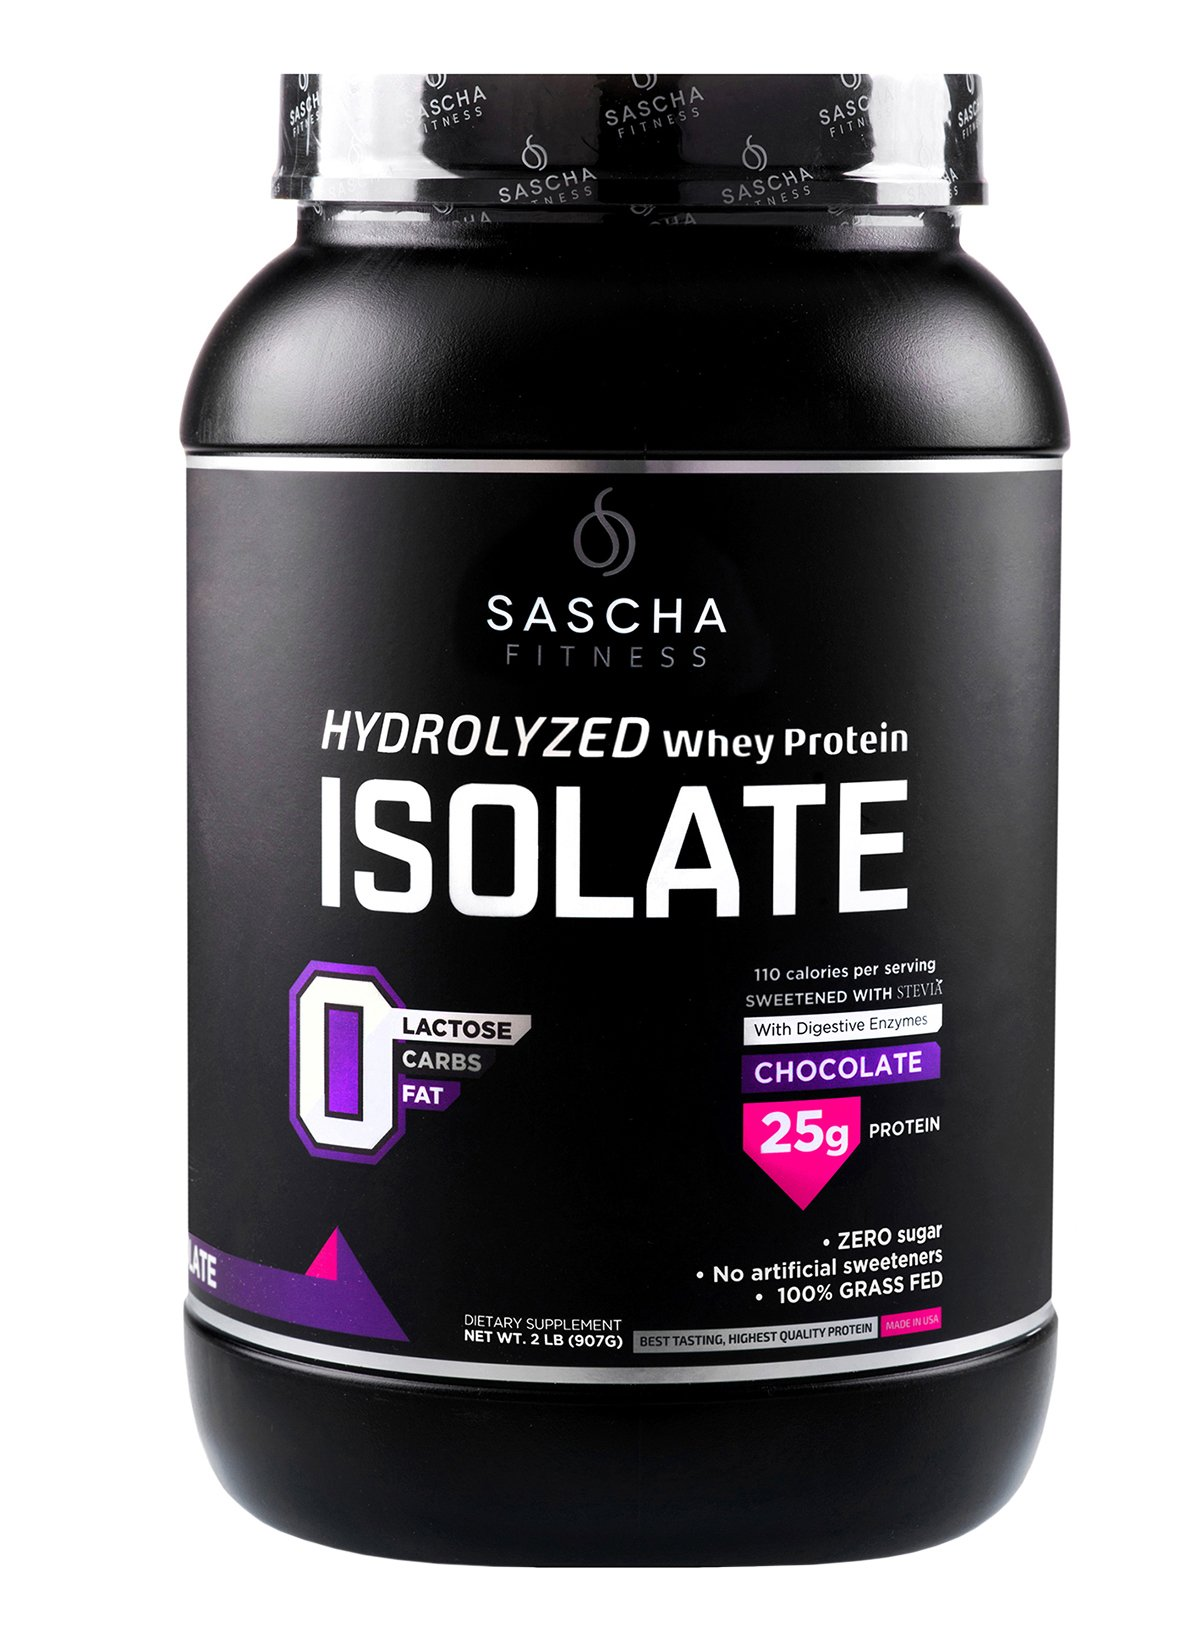 Sascha Fitness Hydrolyzed Whey Protein Isolate,100% Grass-Fed (2 Pound,